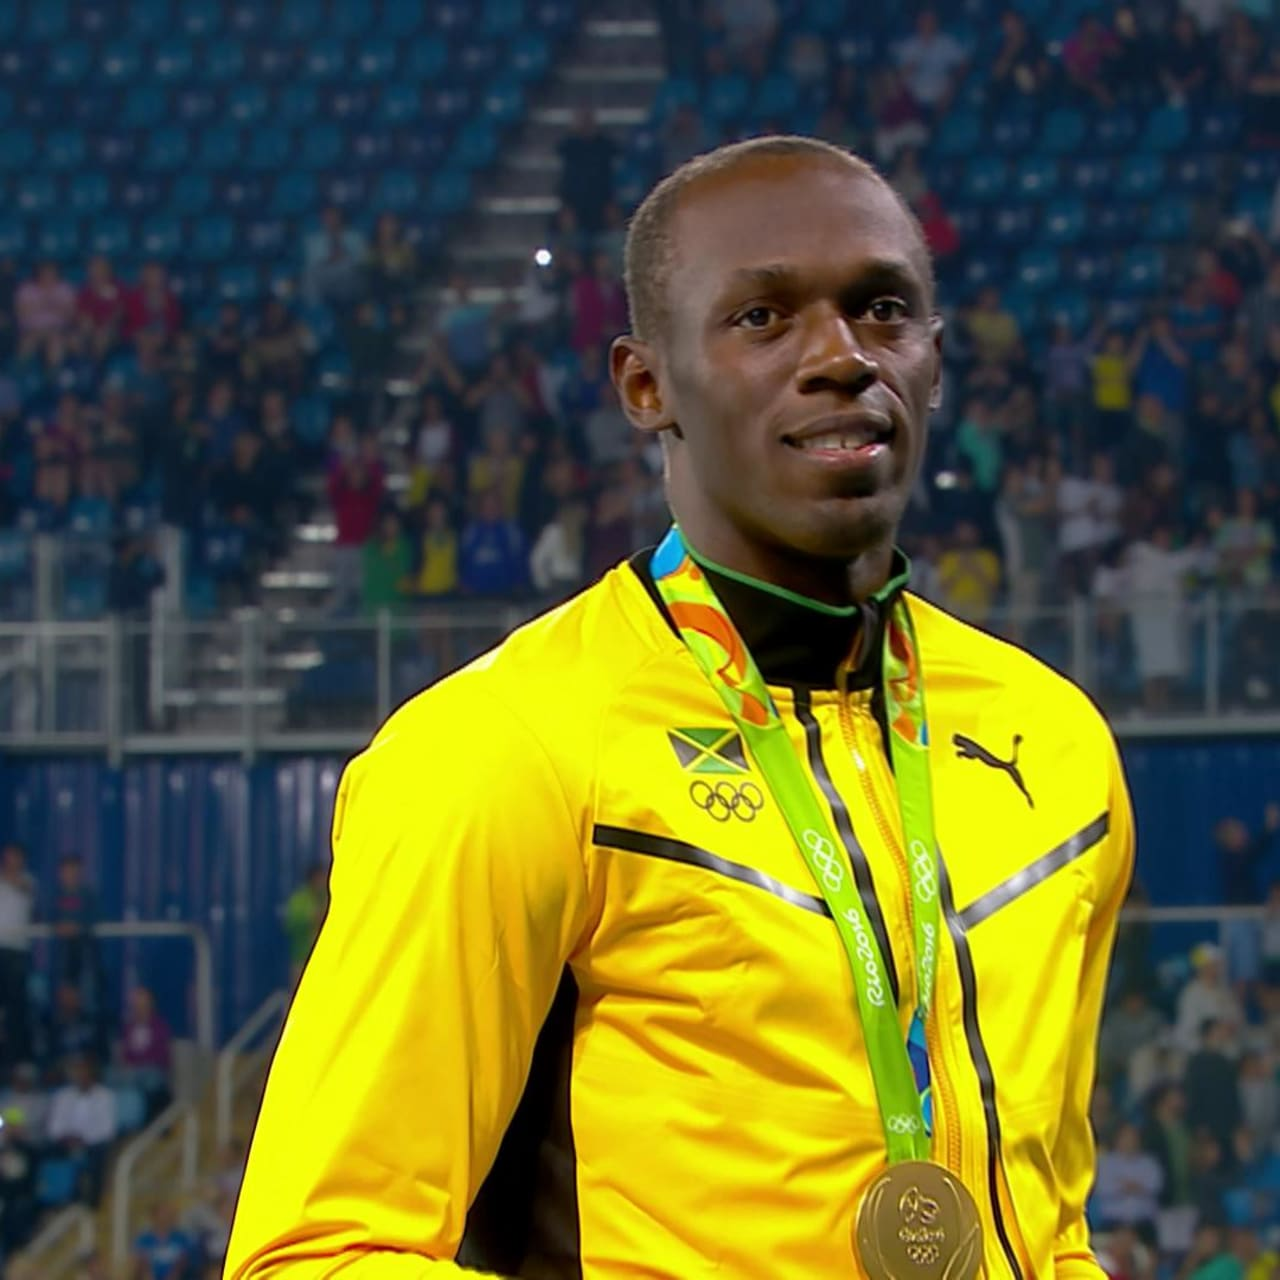 382,588 likes · 1,972 talking about this. Men S 100m Final Rio 2016 Replays